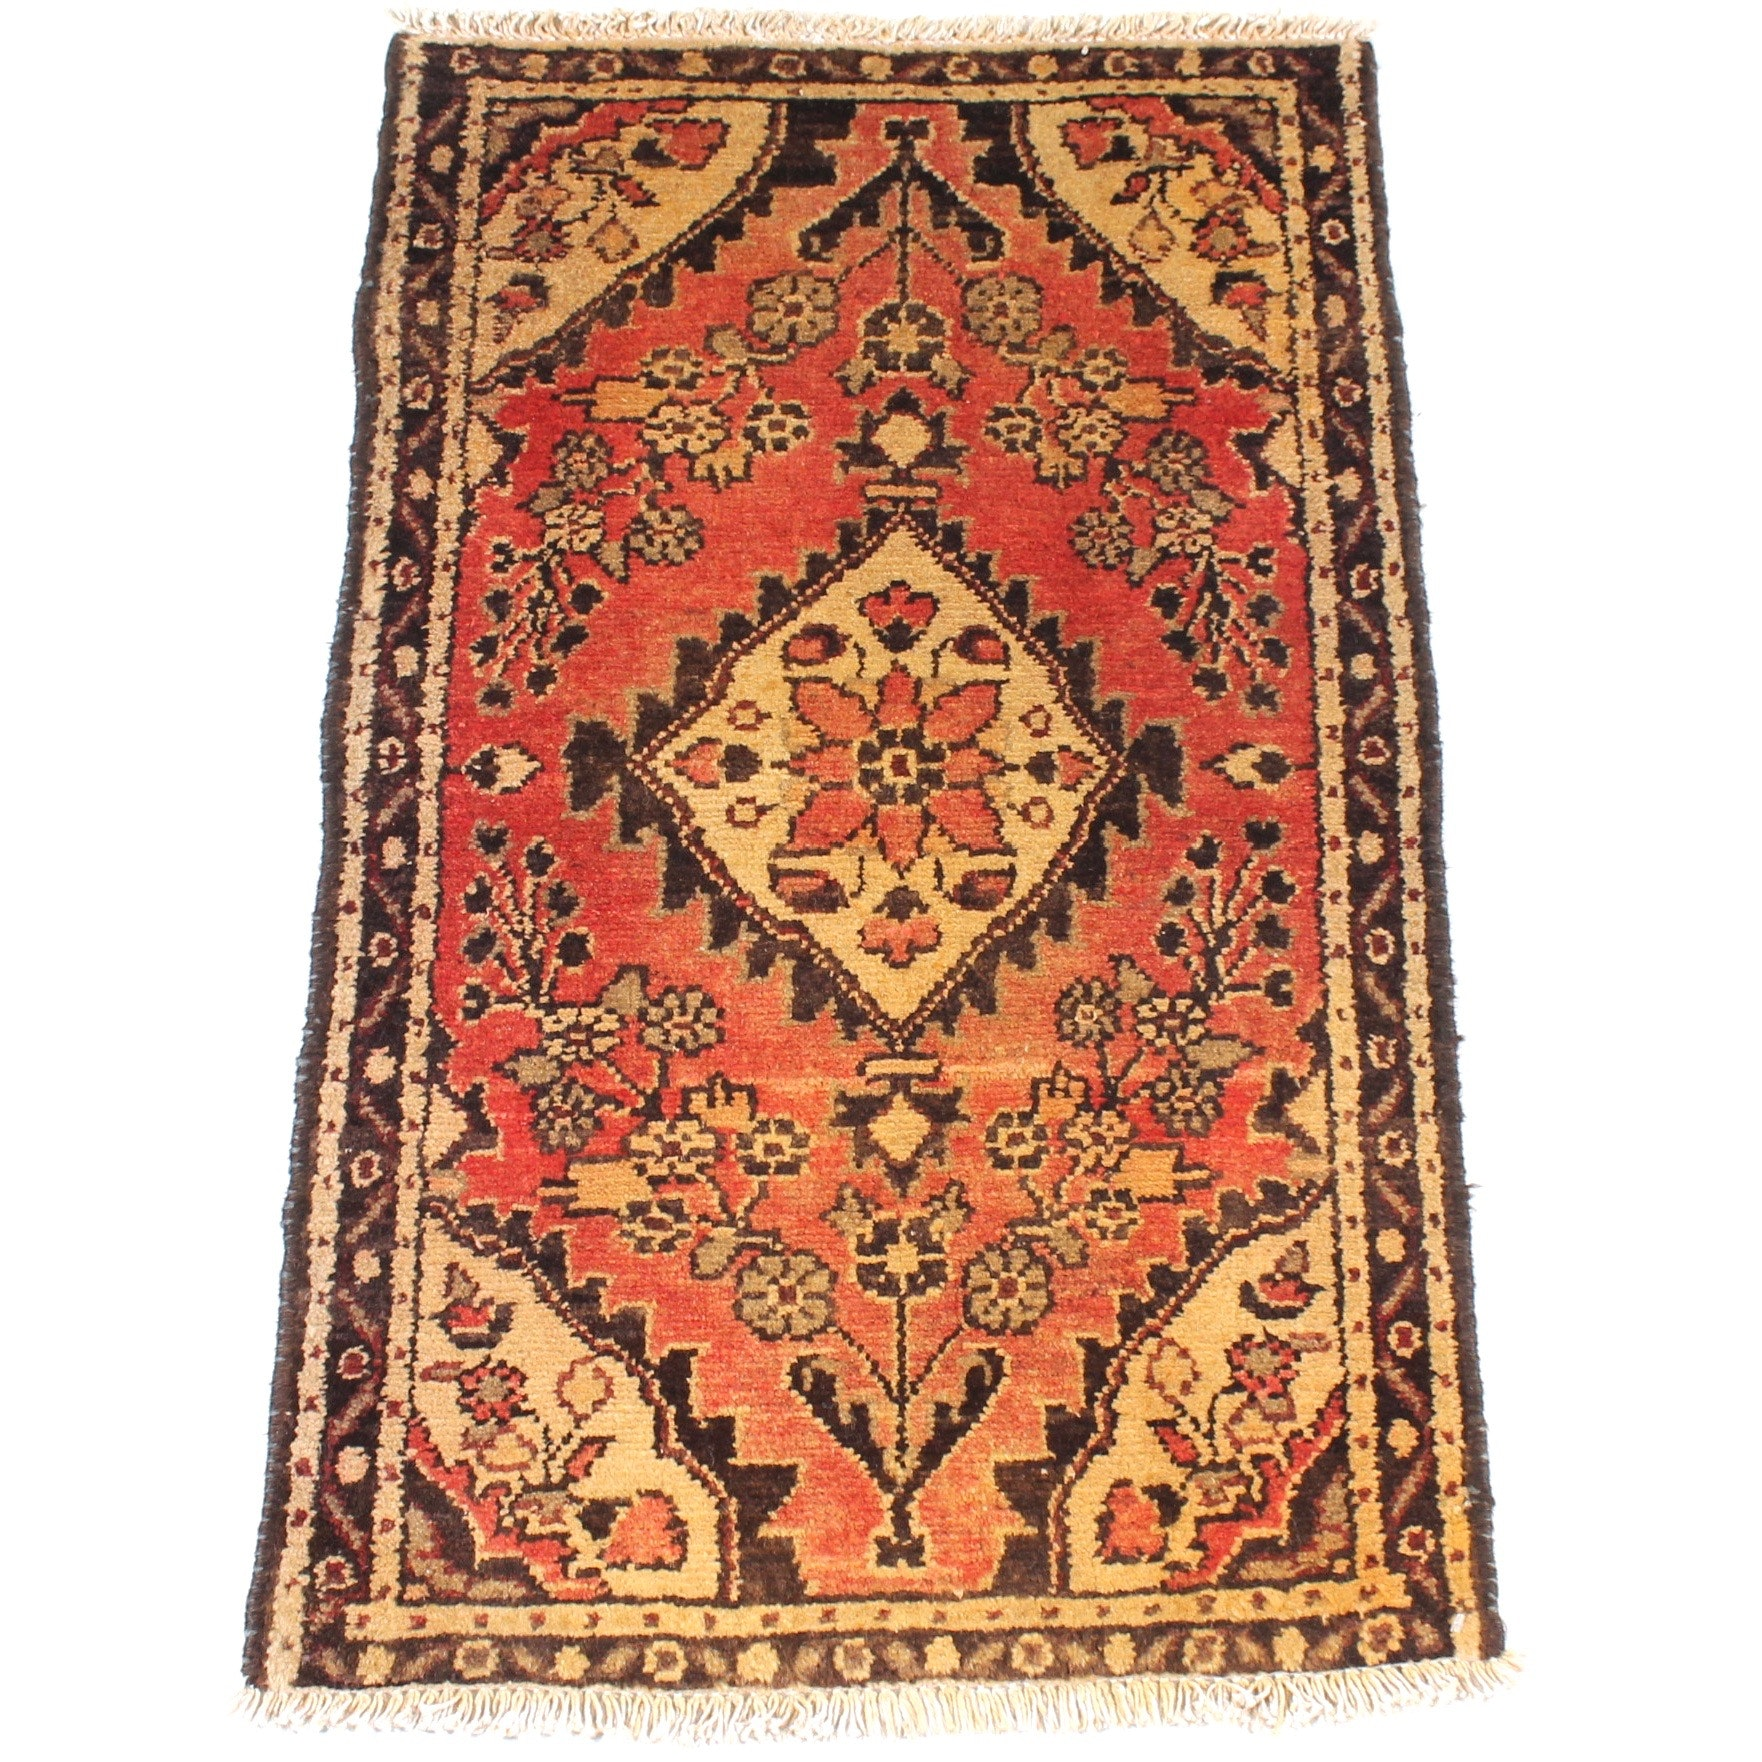 Semi-Antique Hand-Knotted Persian Zanjan Rug